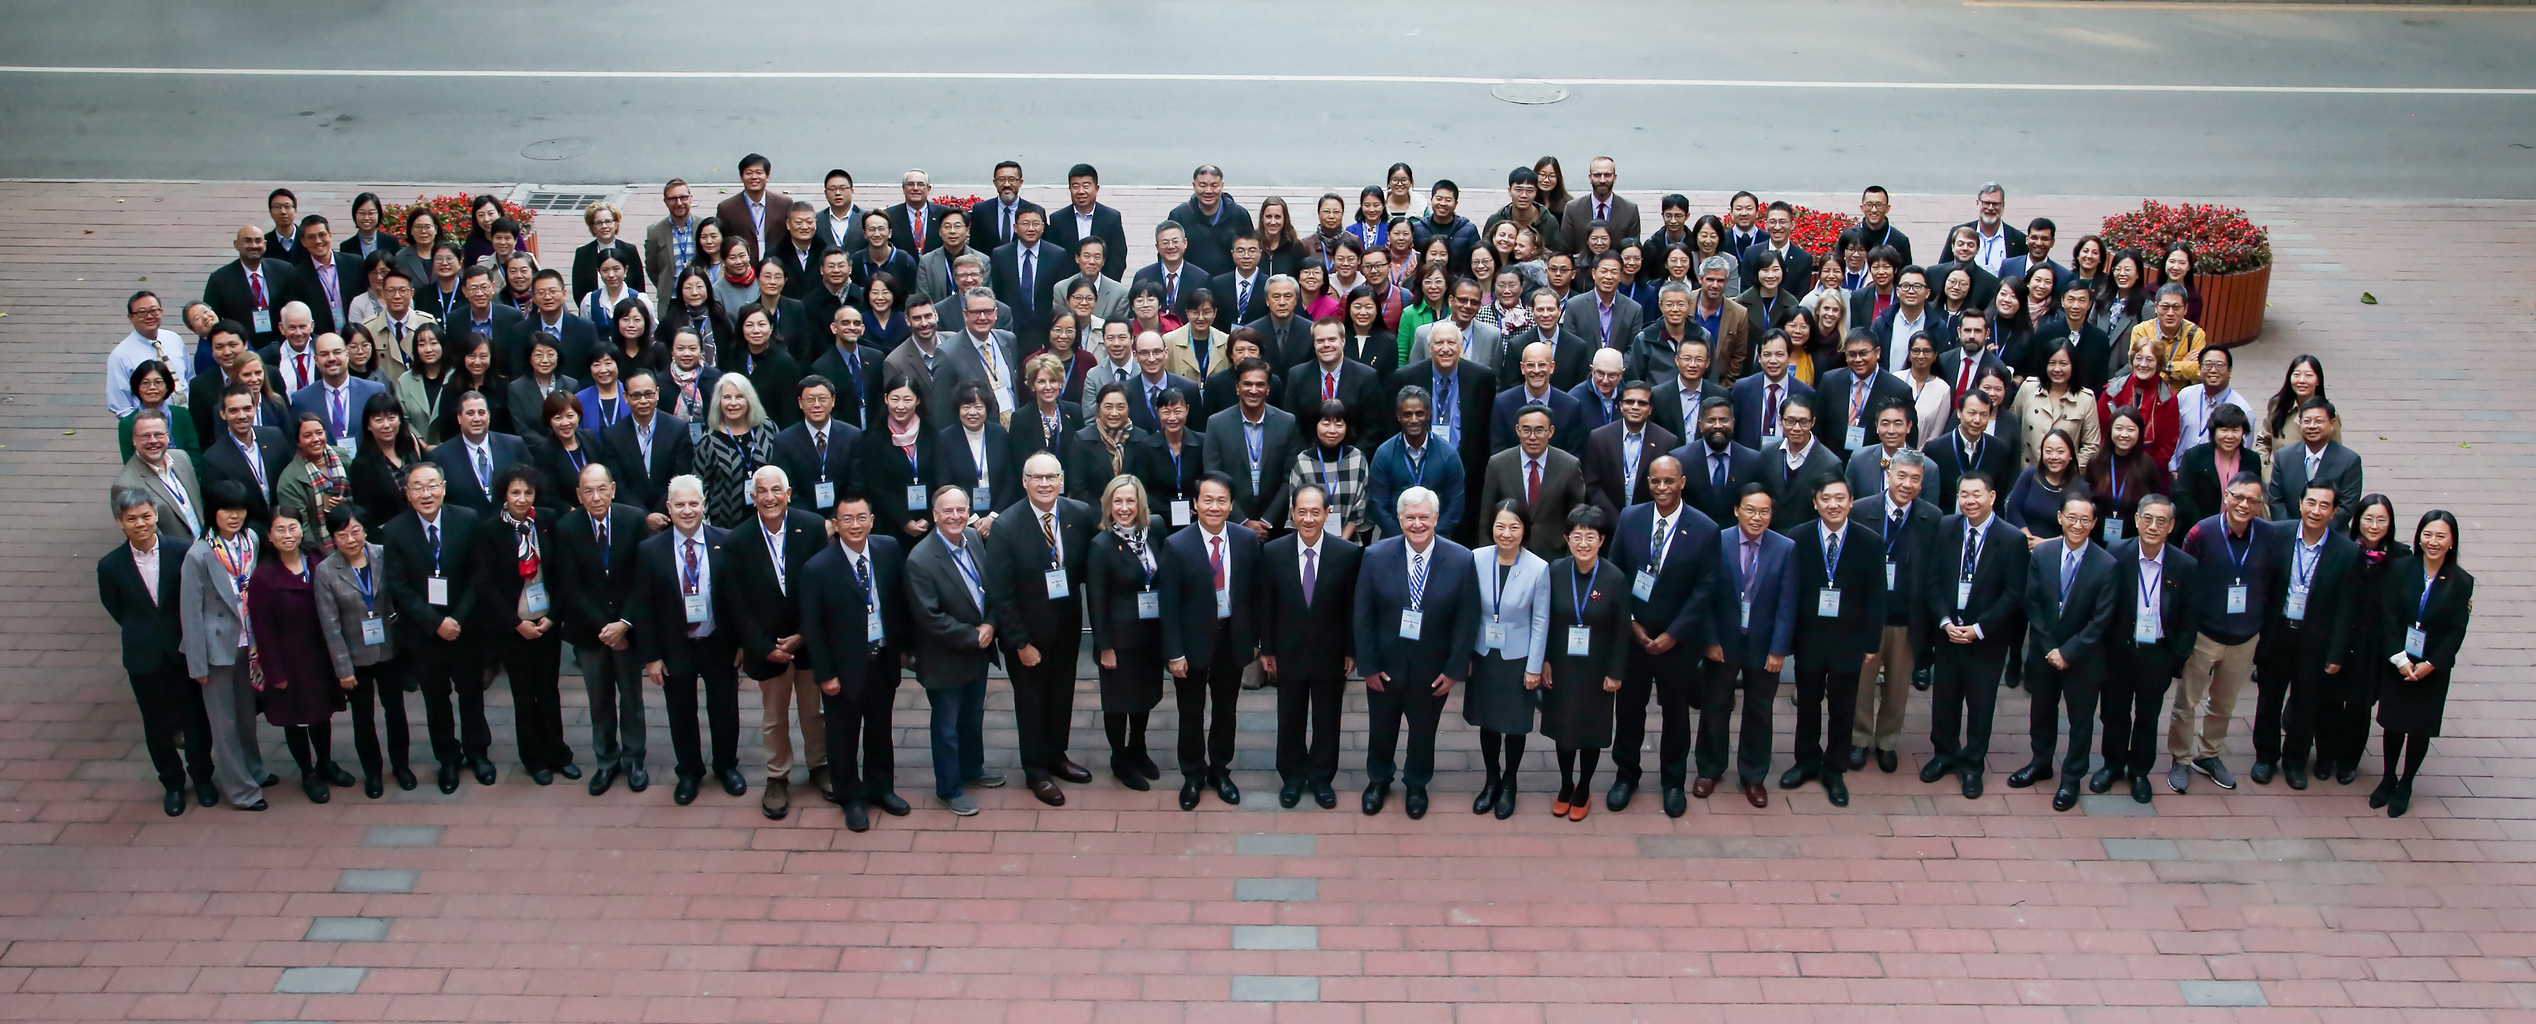 2019 JI Symposium Group Picture